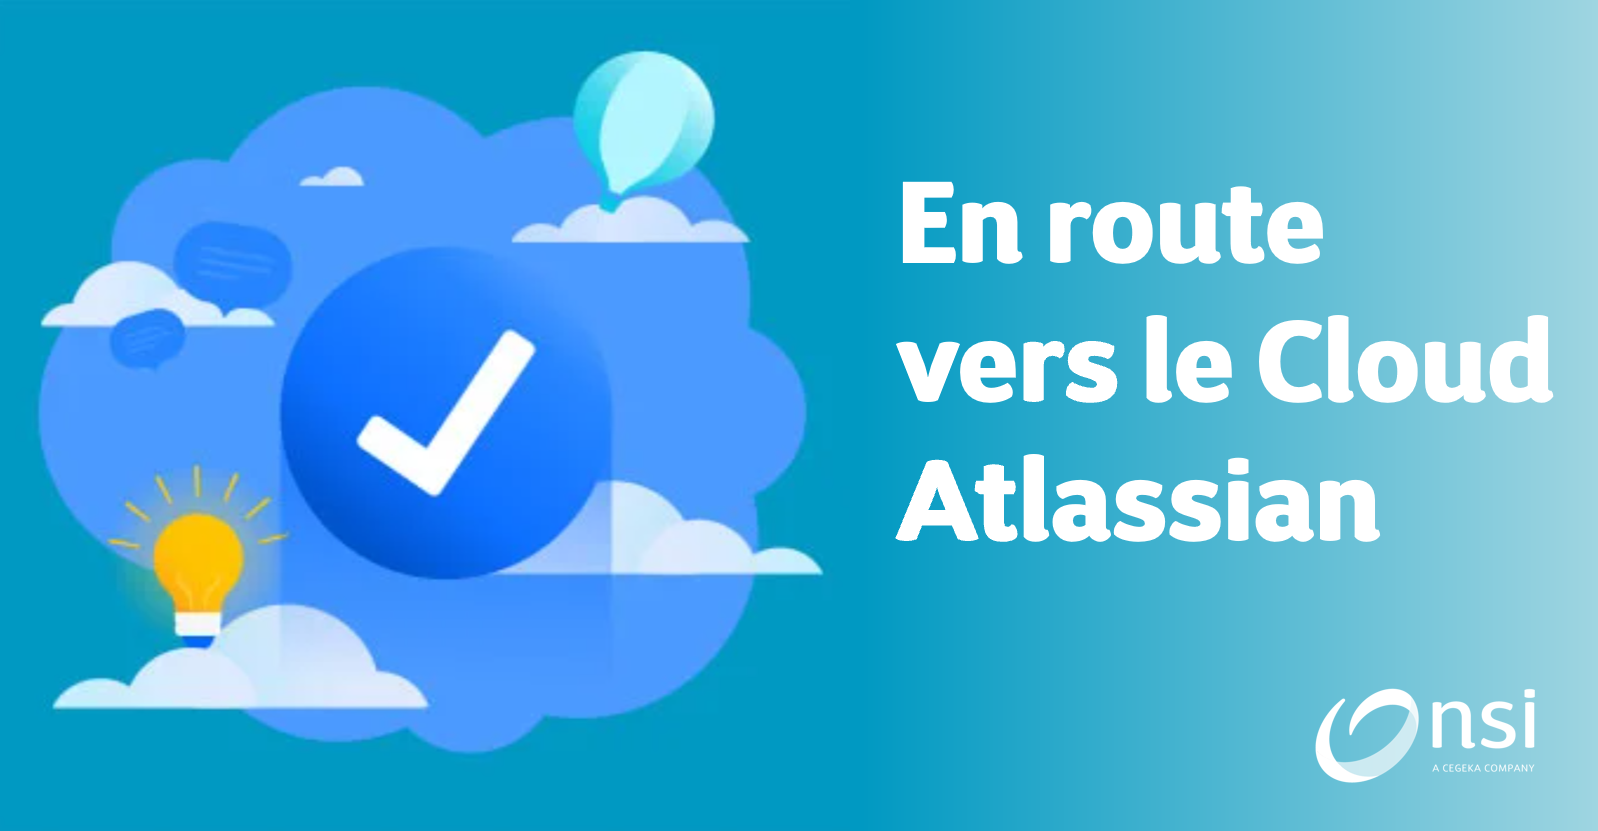 En route vers le Cloud Atlassian